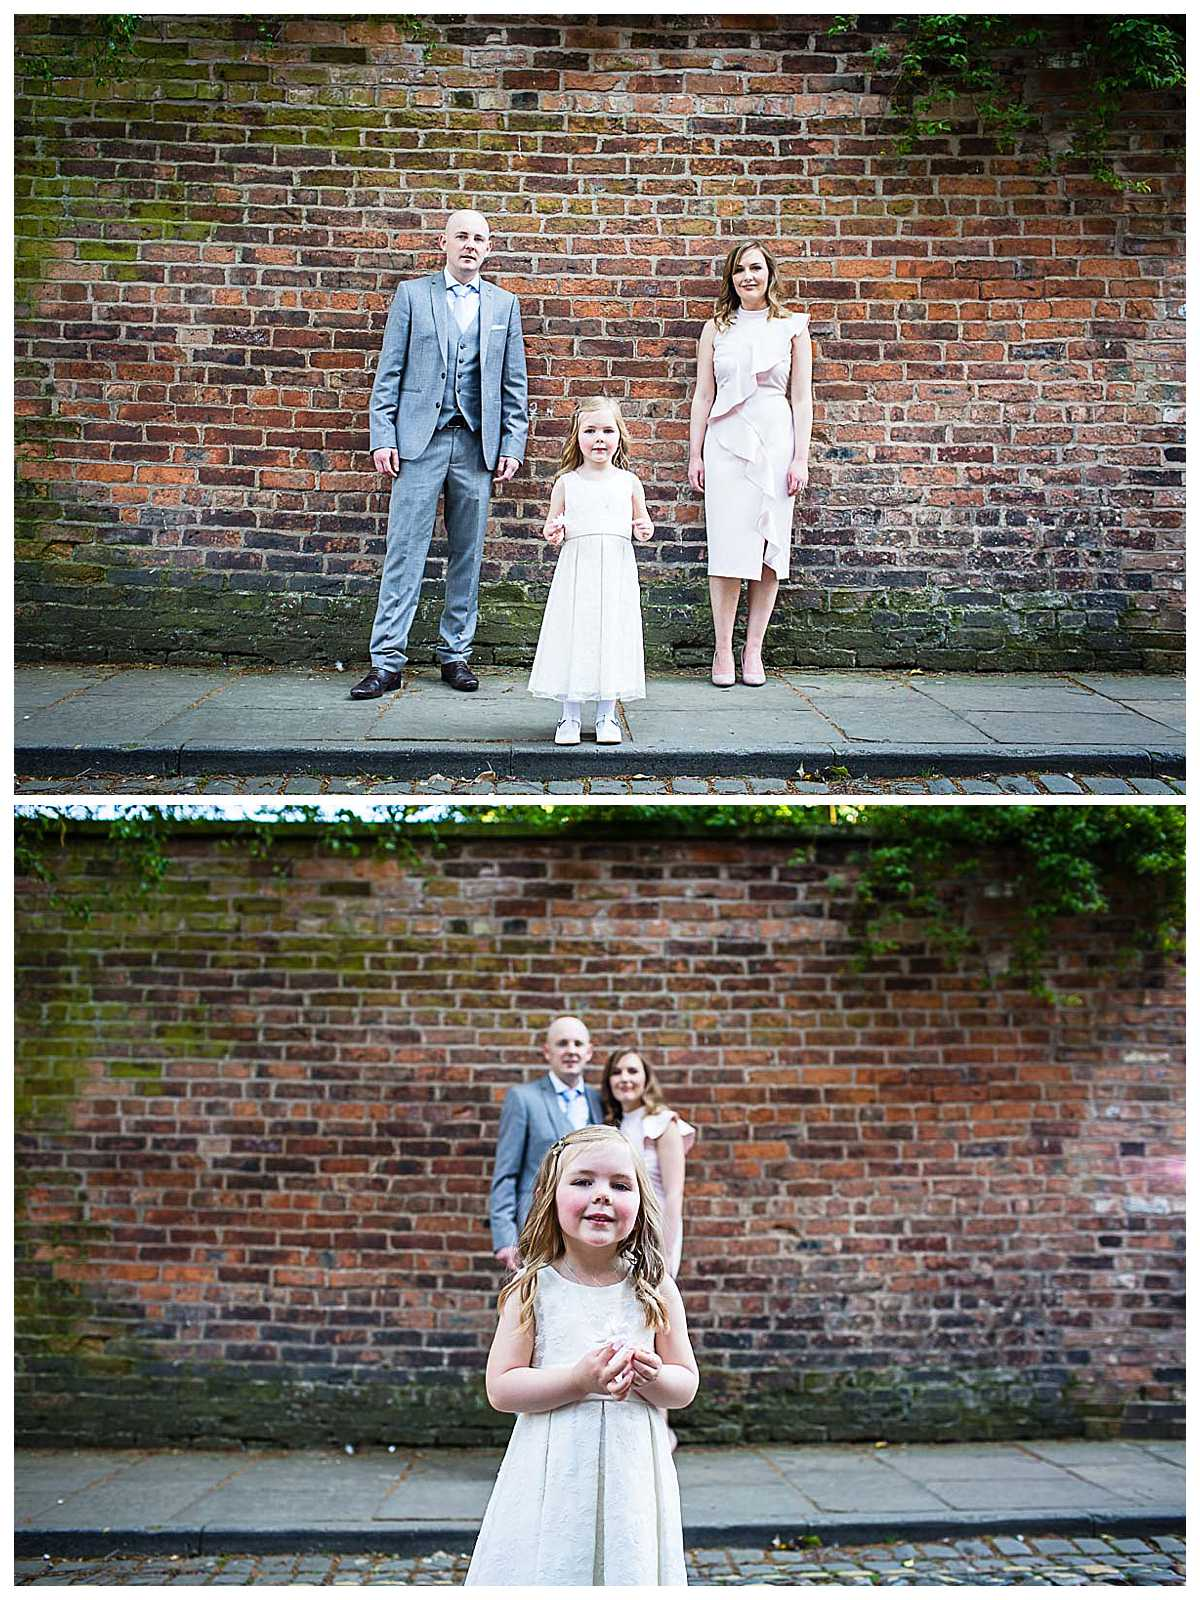 little girl with her mum and dad cool portrait against red brick wall in nantwich